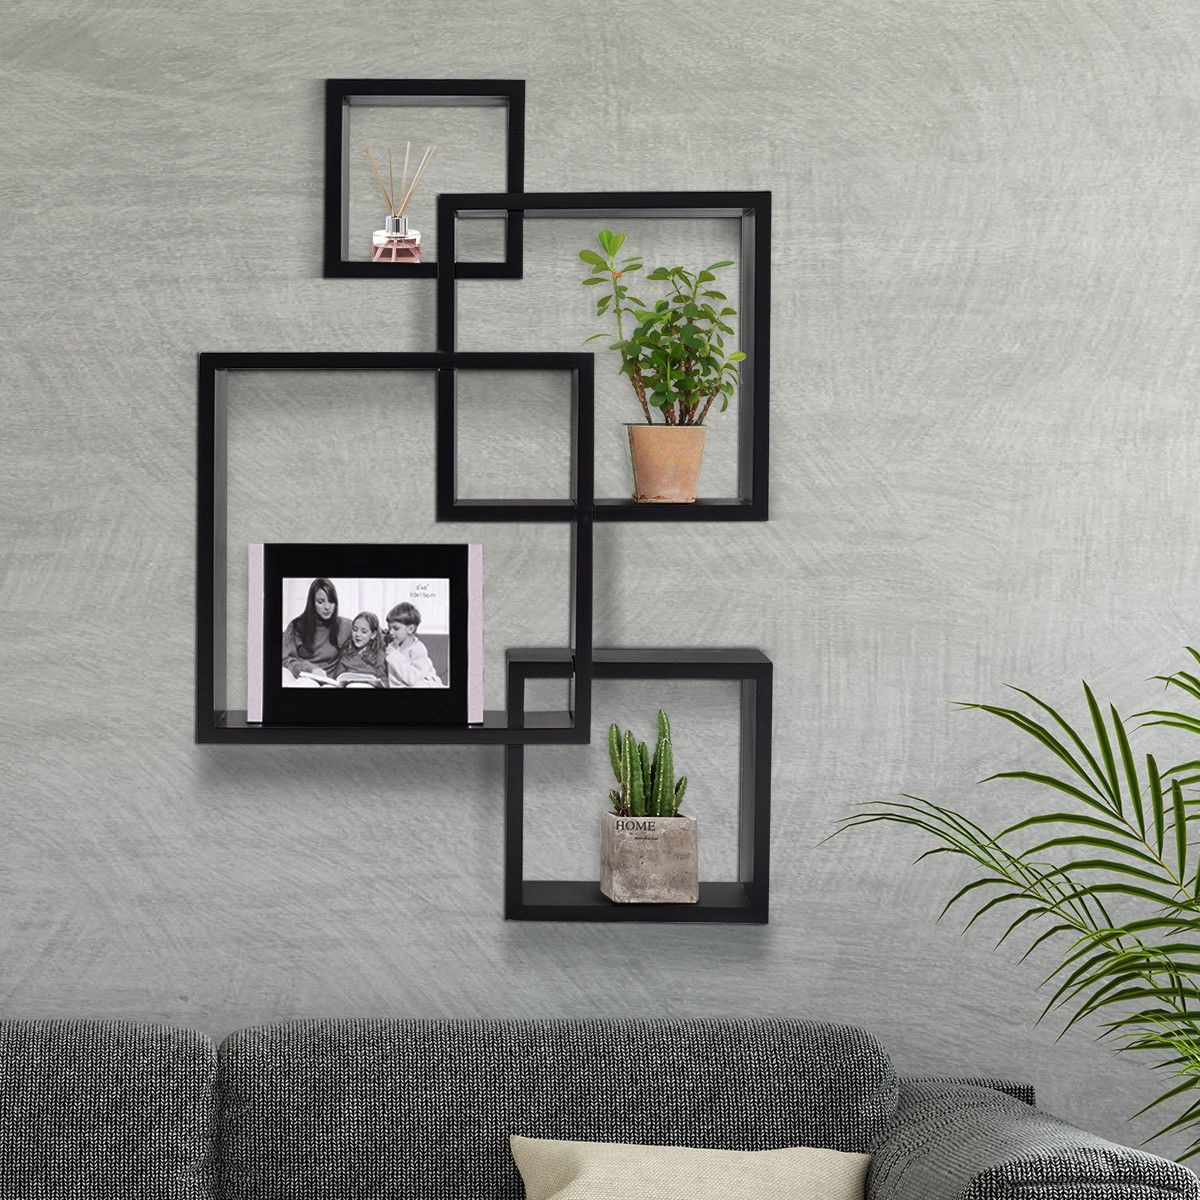 21 Stunning Intersecting Square Bookshelf Wall Mounted Shelves